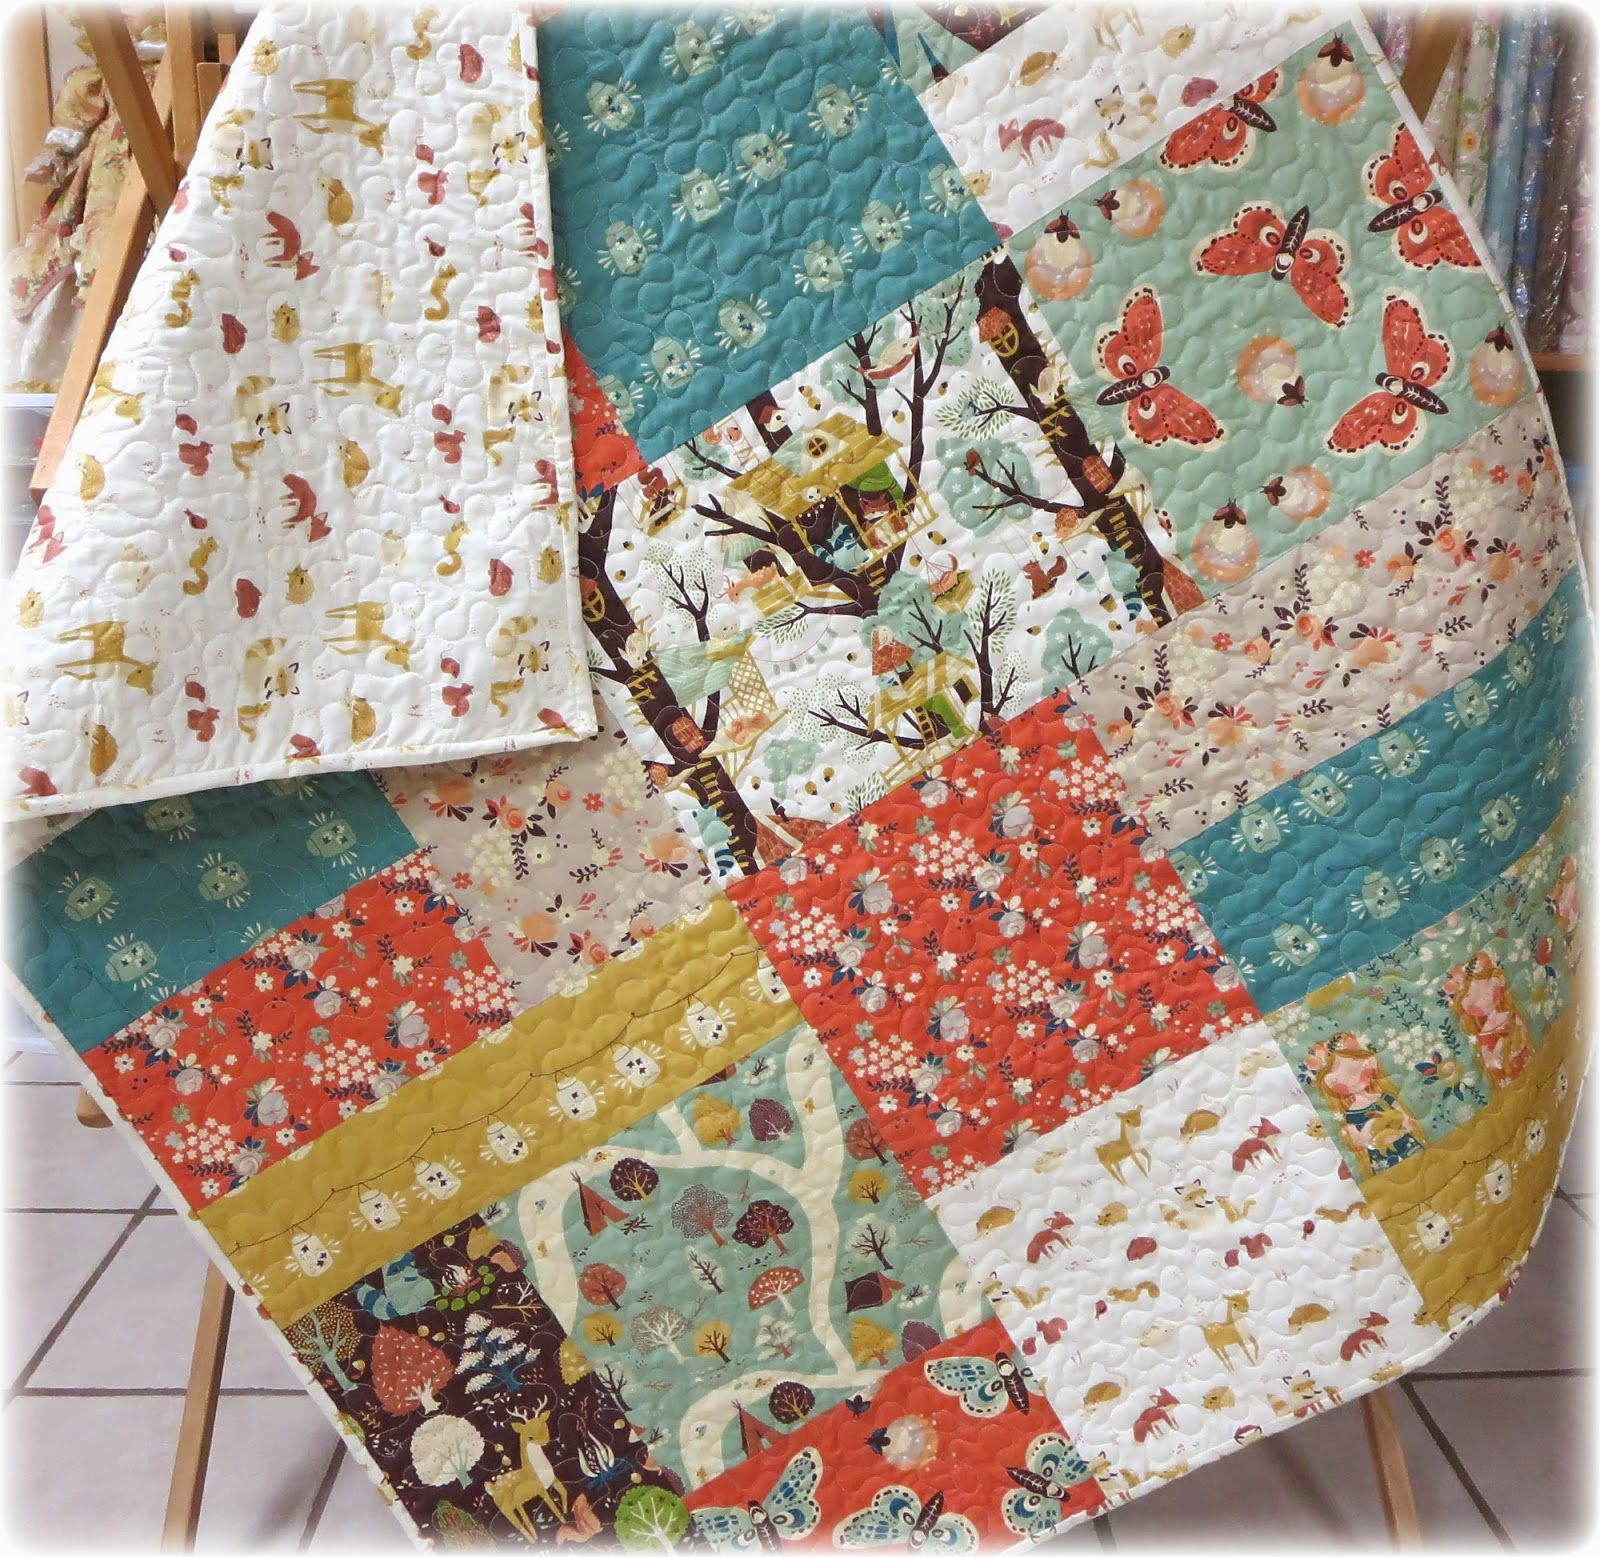 Beautiful Handmade Quilts, Patterns and More! | patterns ... : handmade quilt patterns - Adamdwight.com